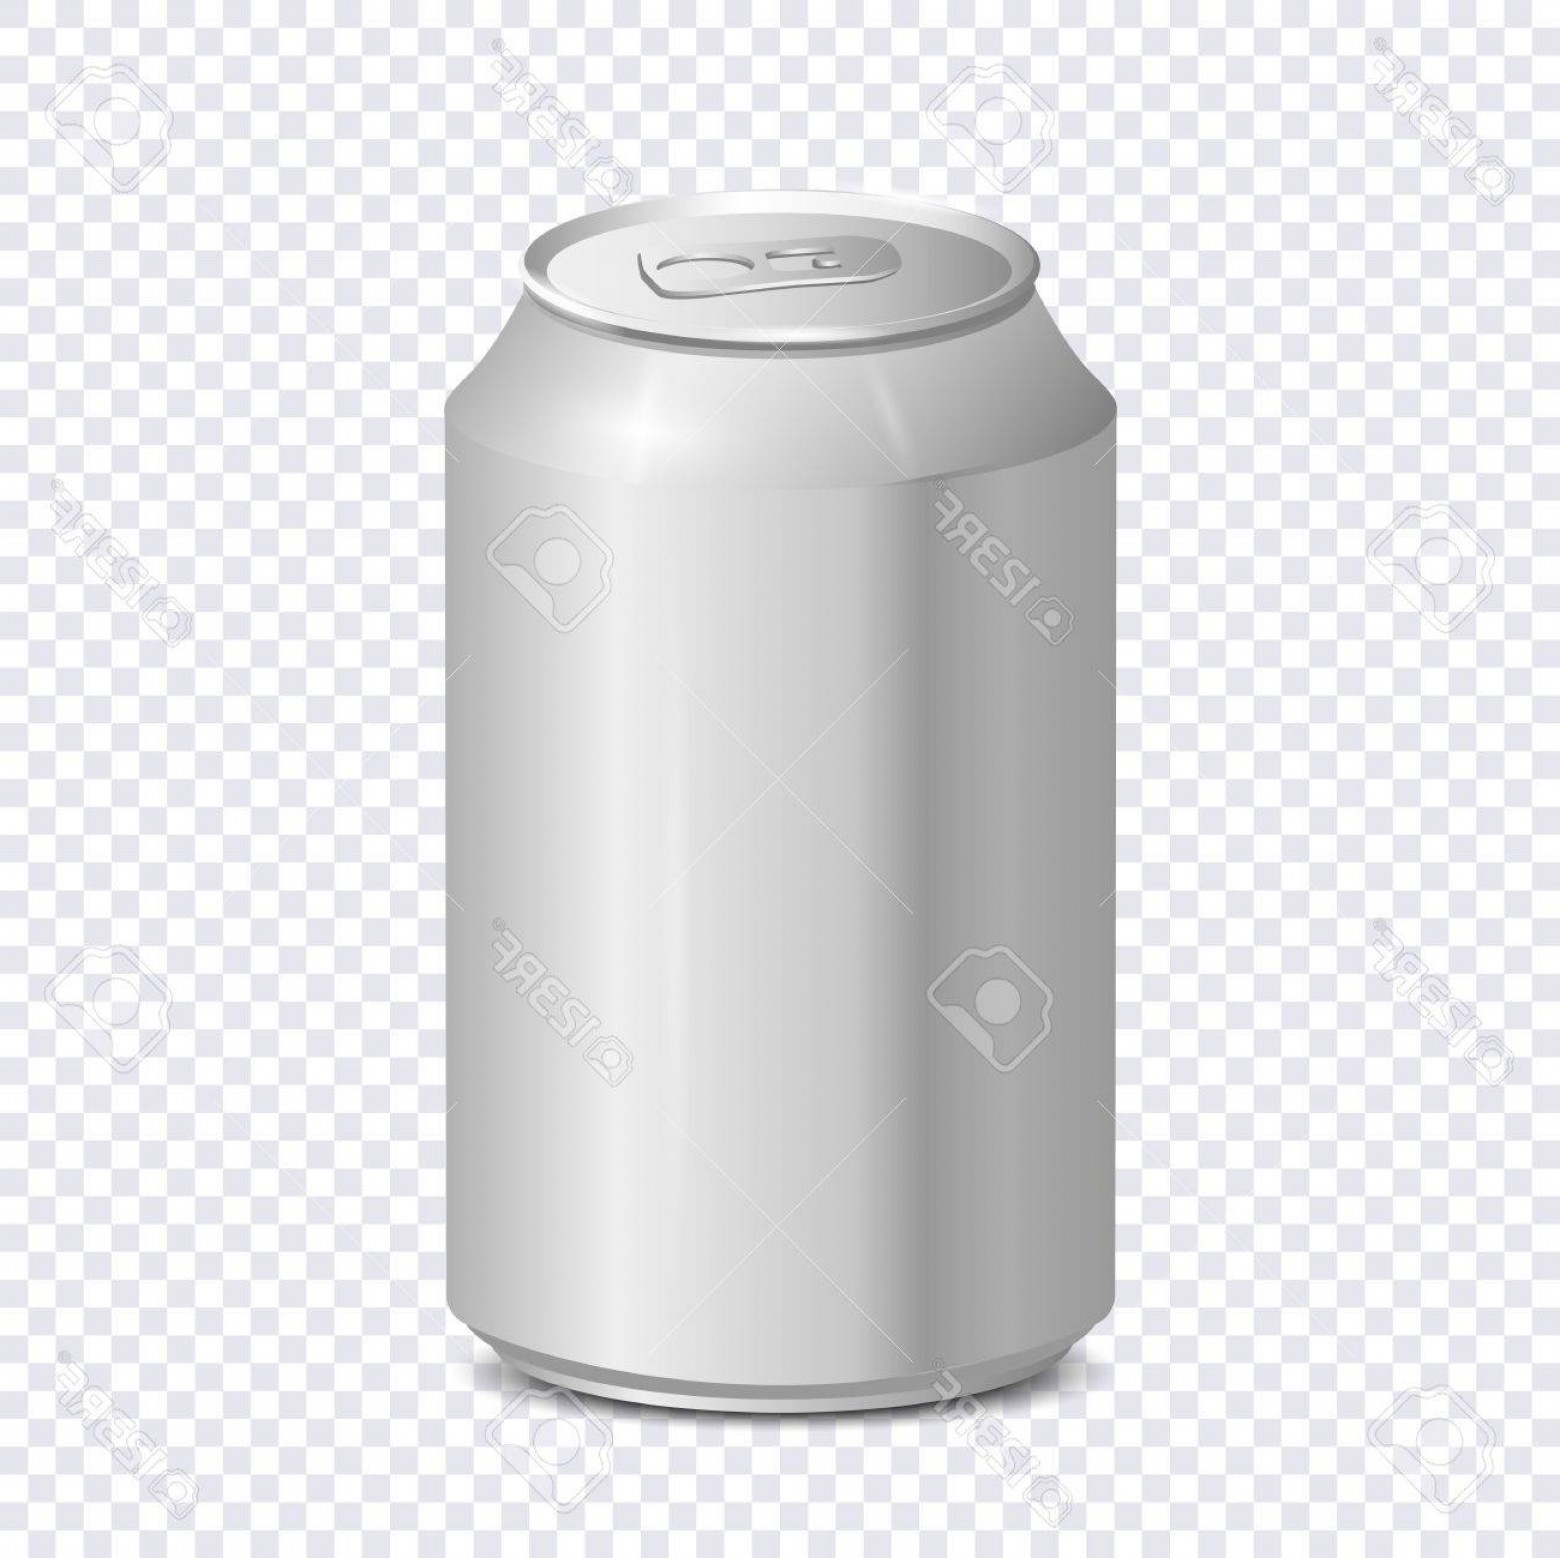 Can Vector: Photostock Vector Blank Aluminum Soda Can On Transparent Background Vector Template For Beer Or Juice Design